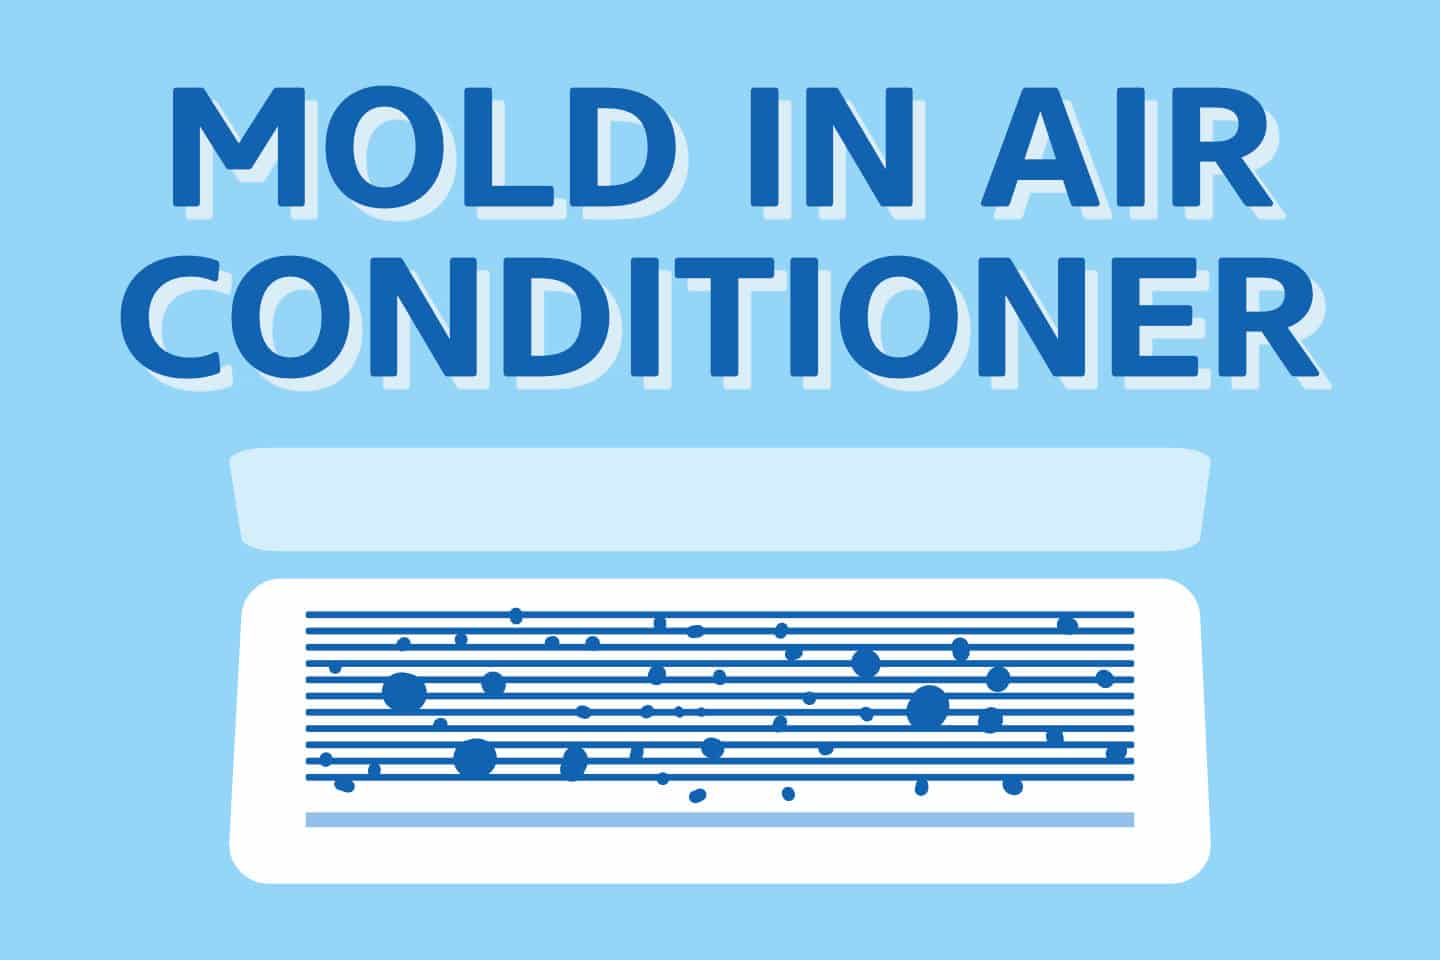 ❄️ How To Get Rid Of Mold in AC FAST Without Expensive Equipment